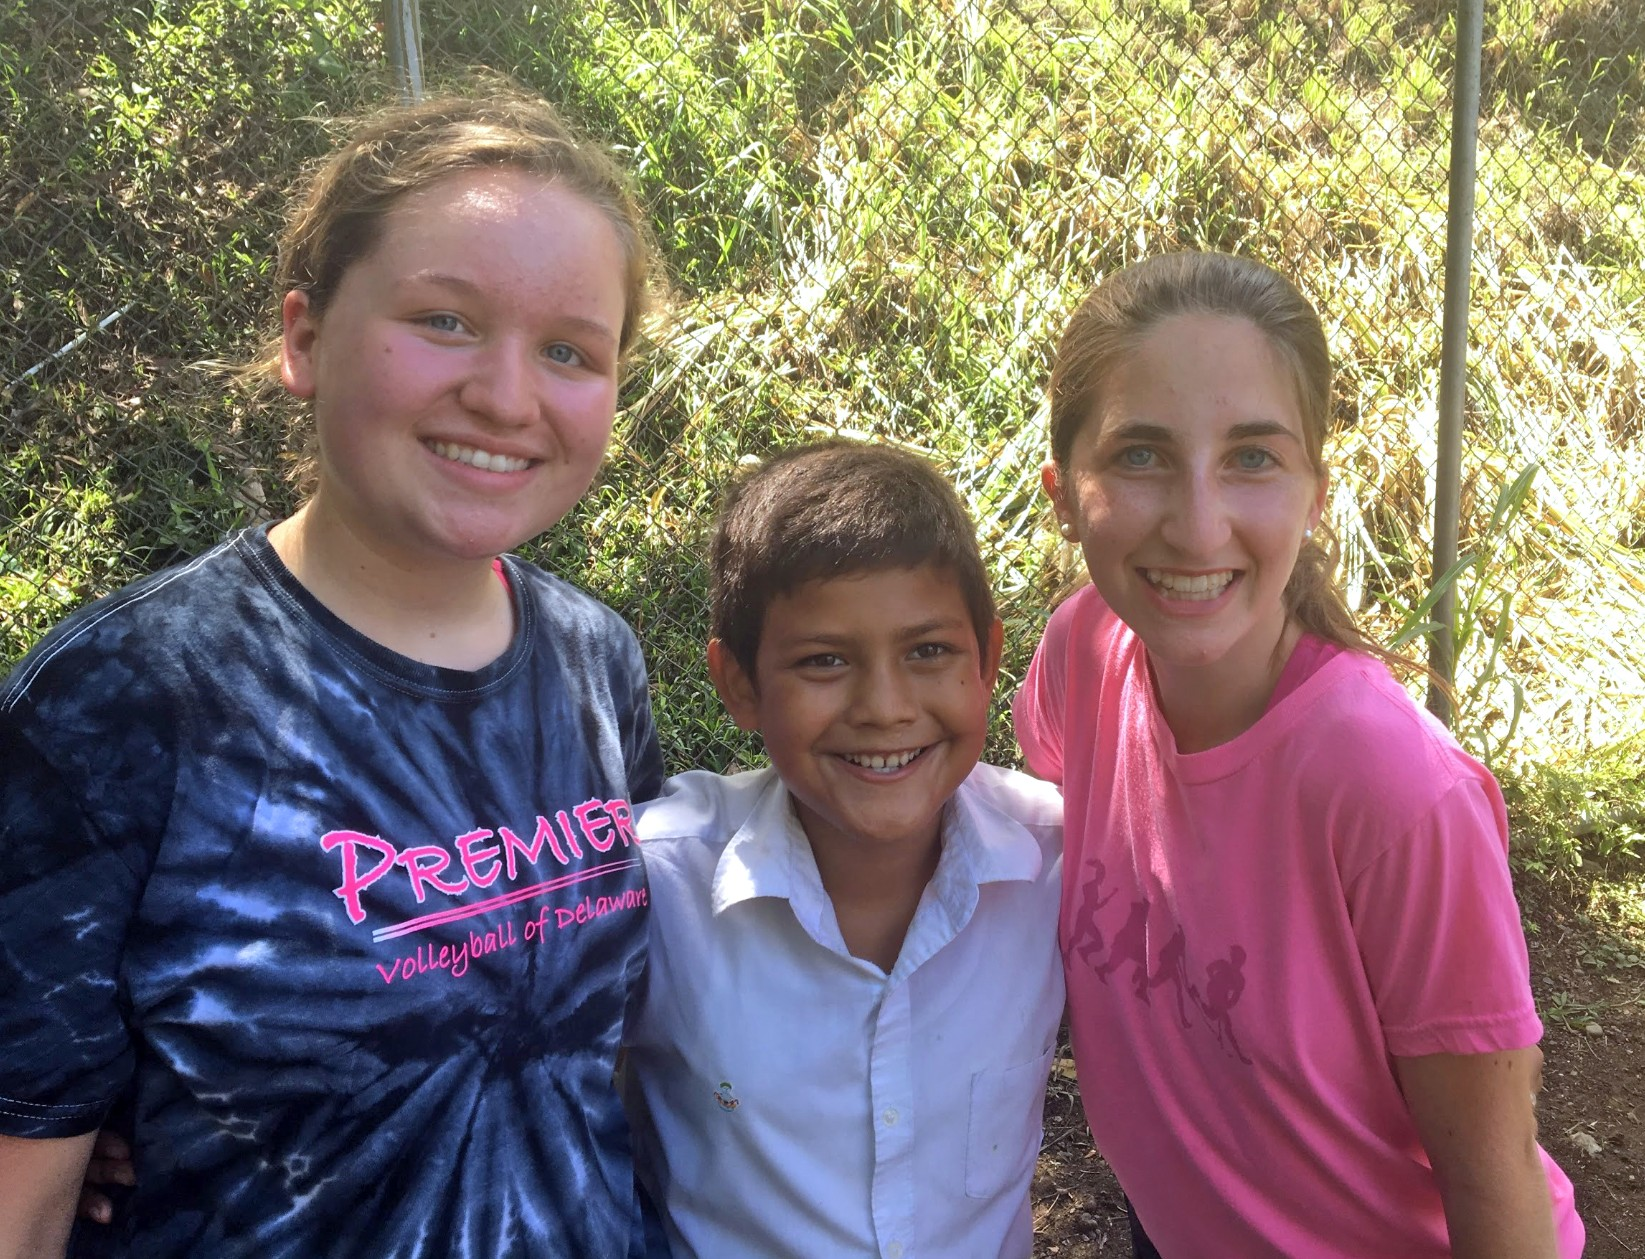 Summer service trip to Costa Rica provides students with new adventures, treasured memories